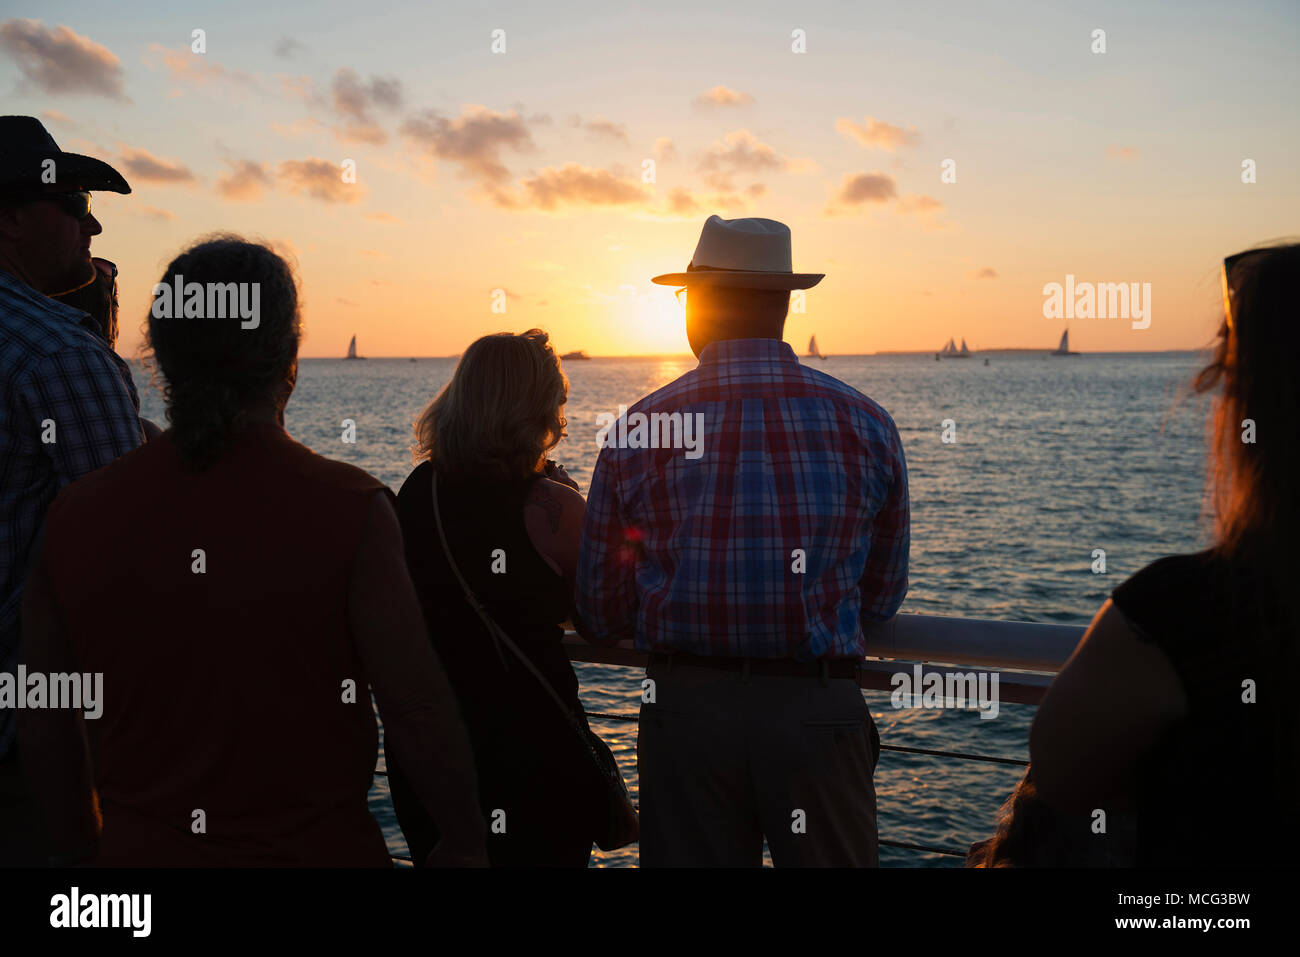 People watching the sunset from Mallory Square in Key West, Florida. Stock Photo